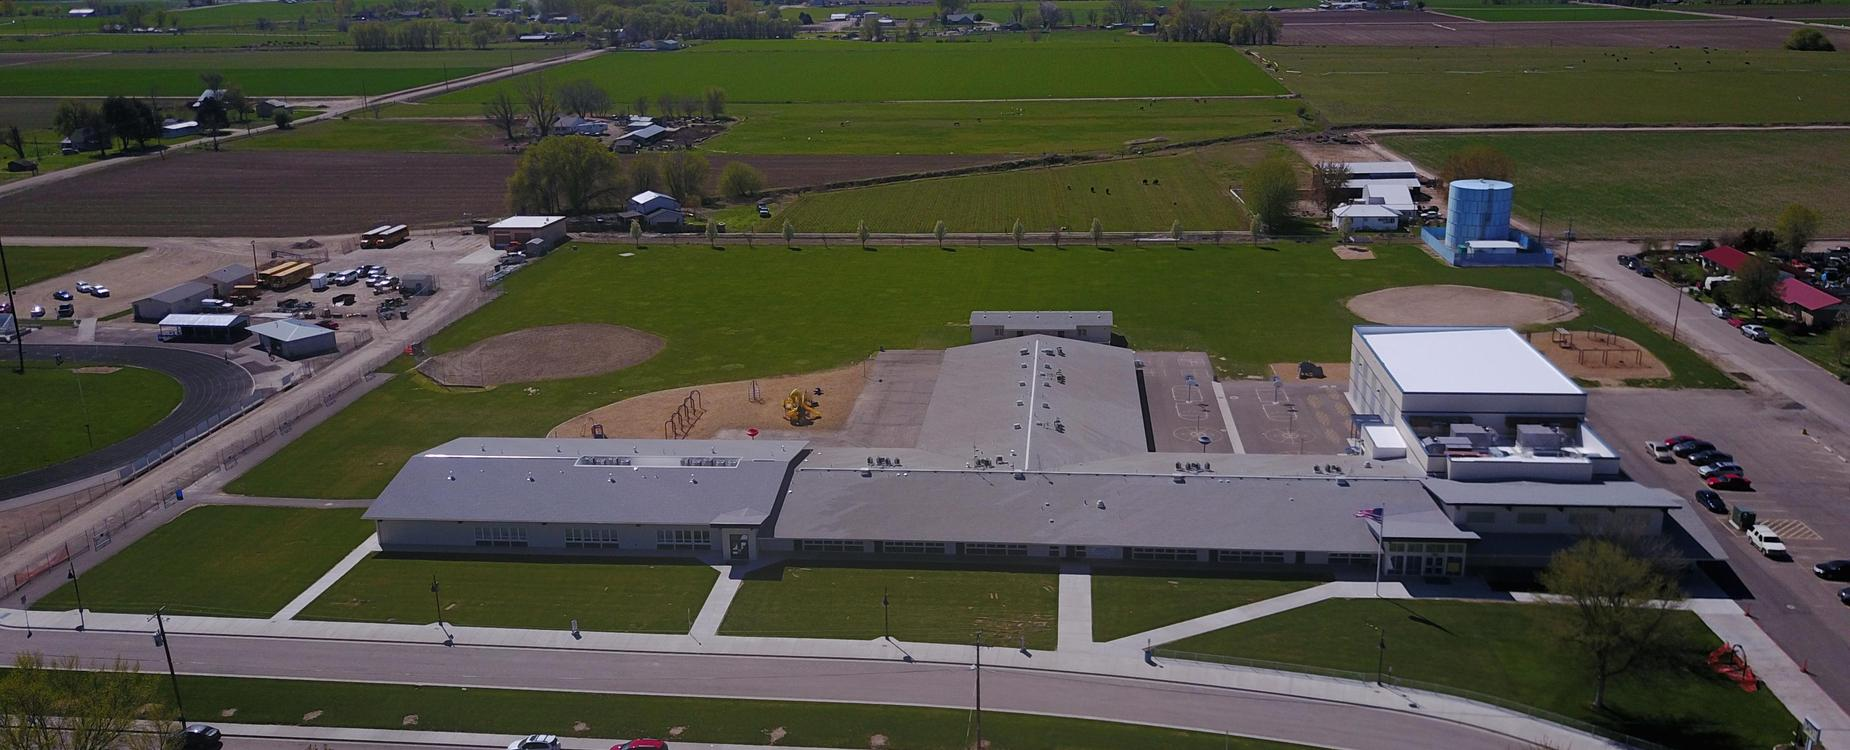 New Plymouth Elementary School aerial view front